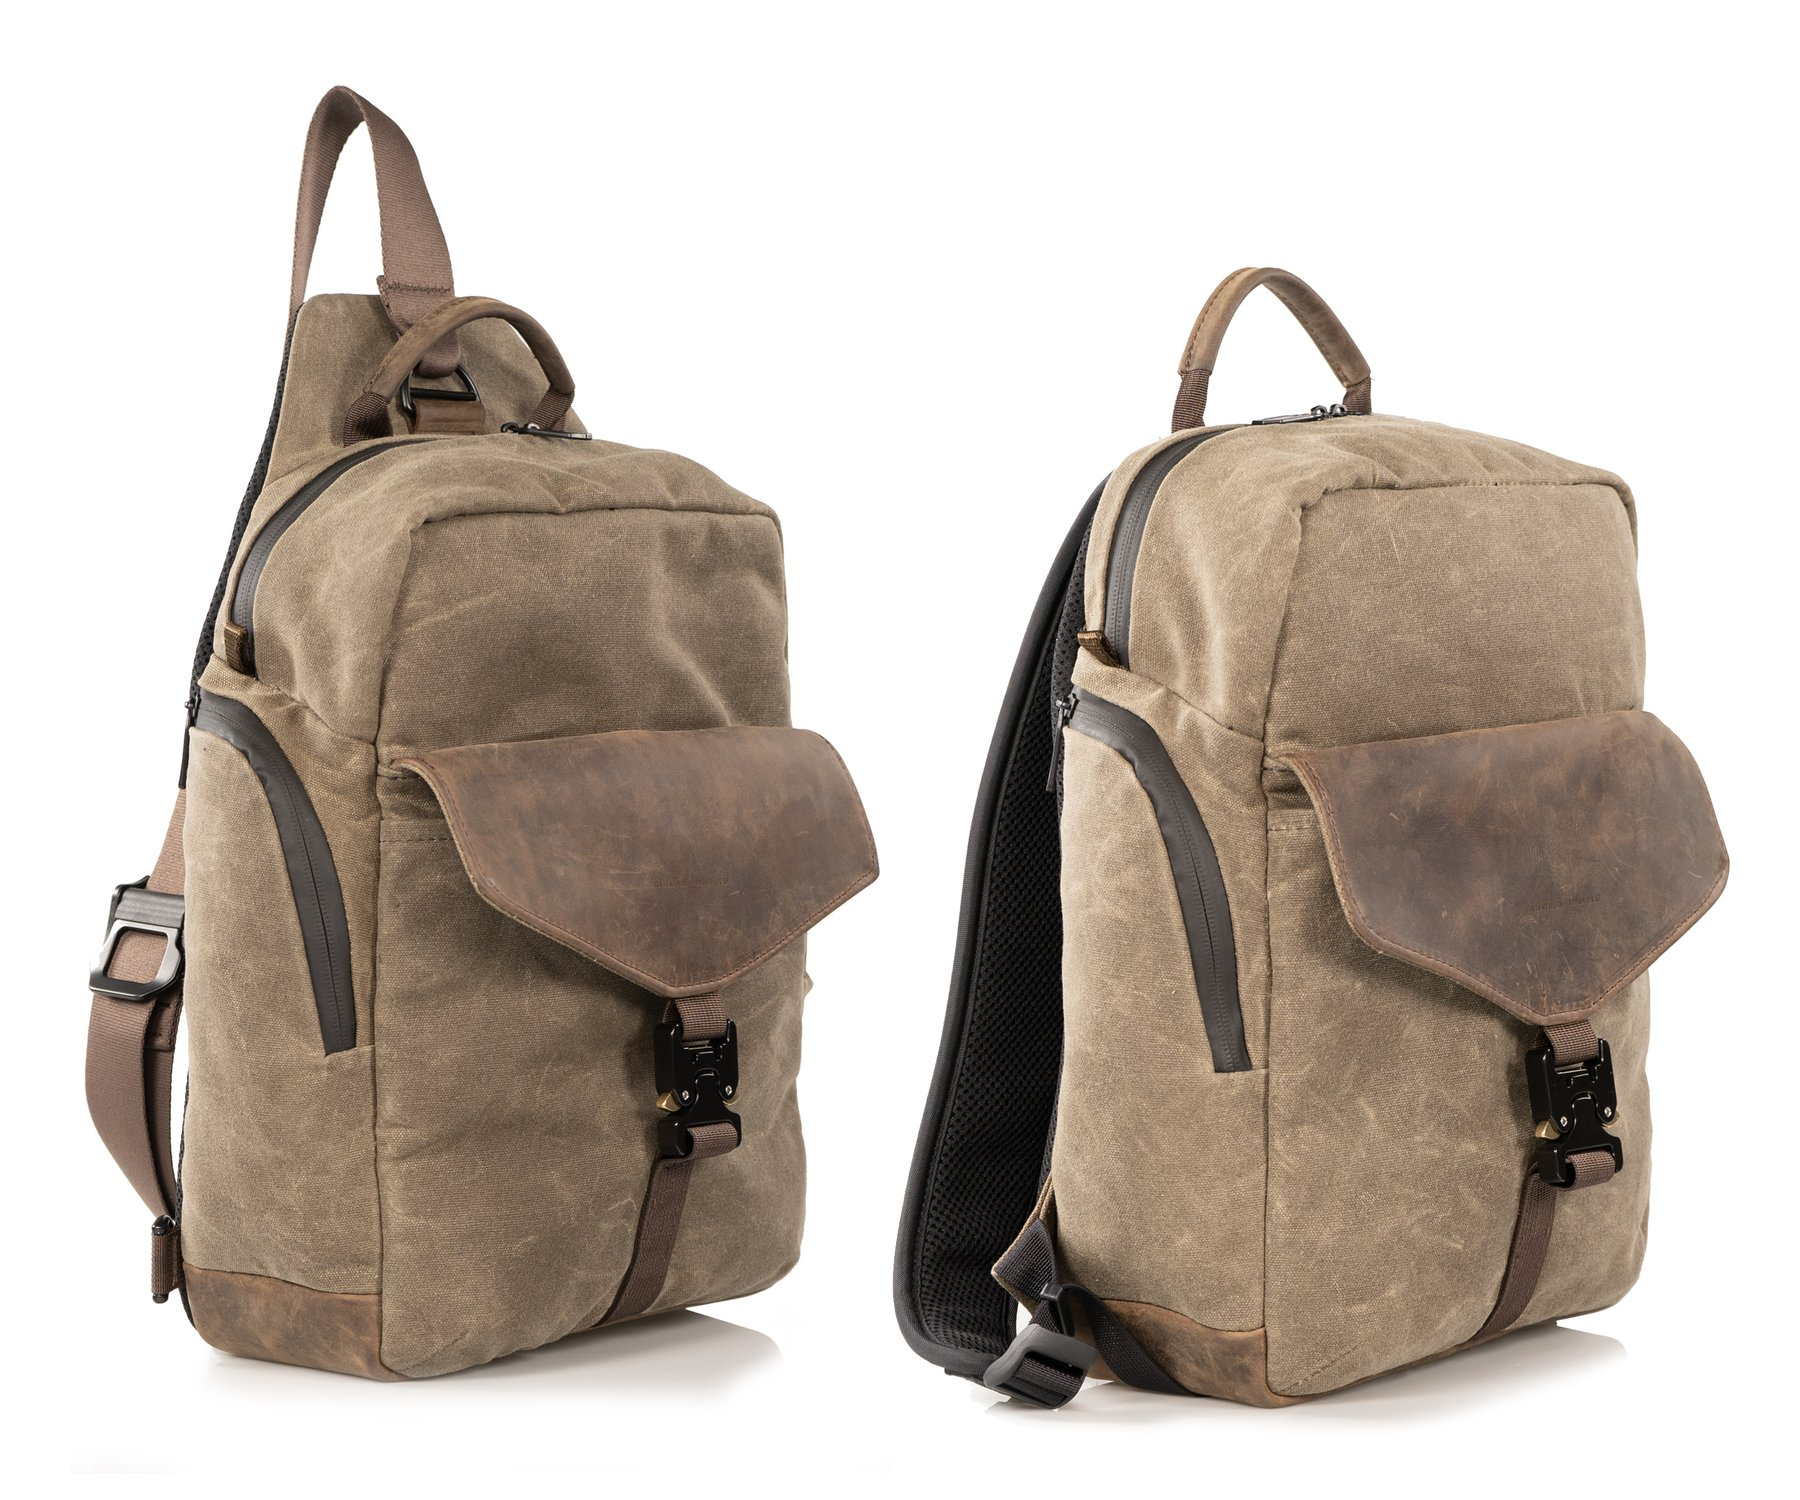 FIeld Sling and Backpack